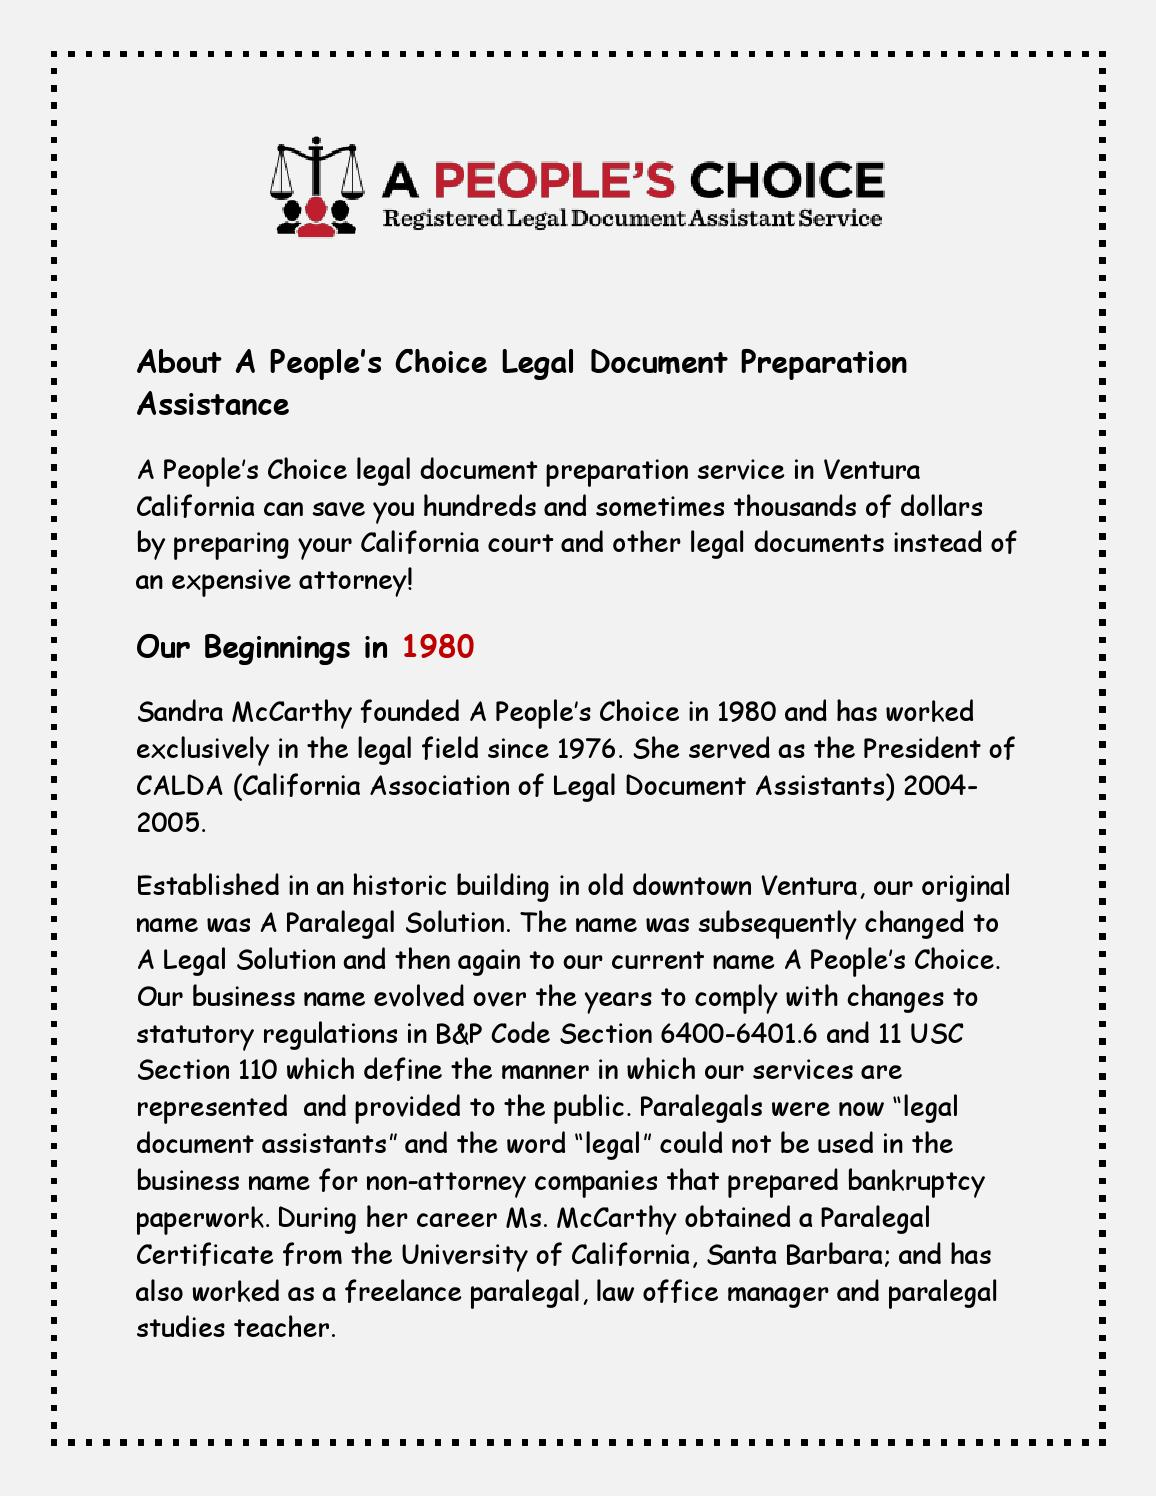 California Civil Litigation And Procedures By Apeopleschoice Issuu - Legal document assistant